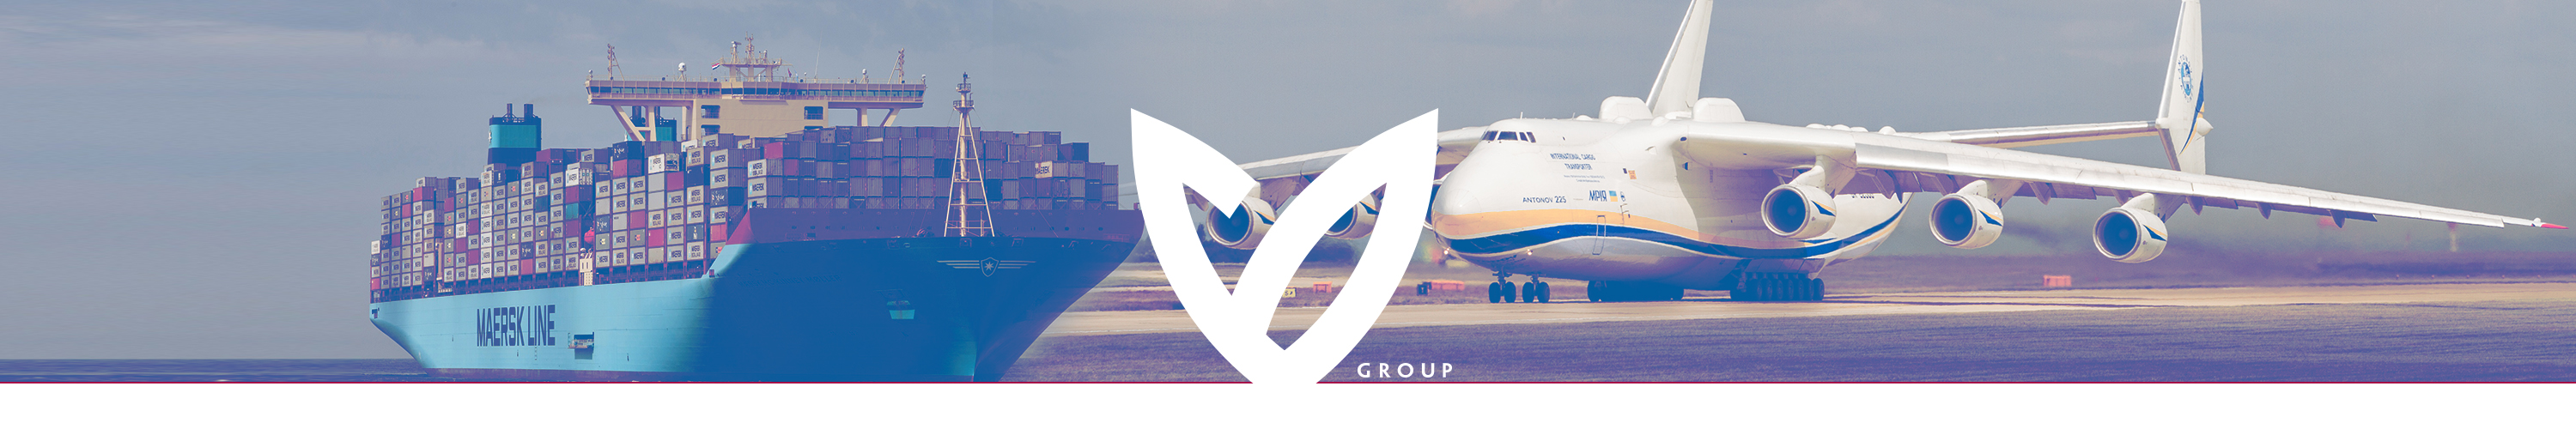 varesco group logistica